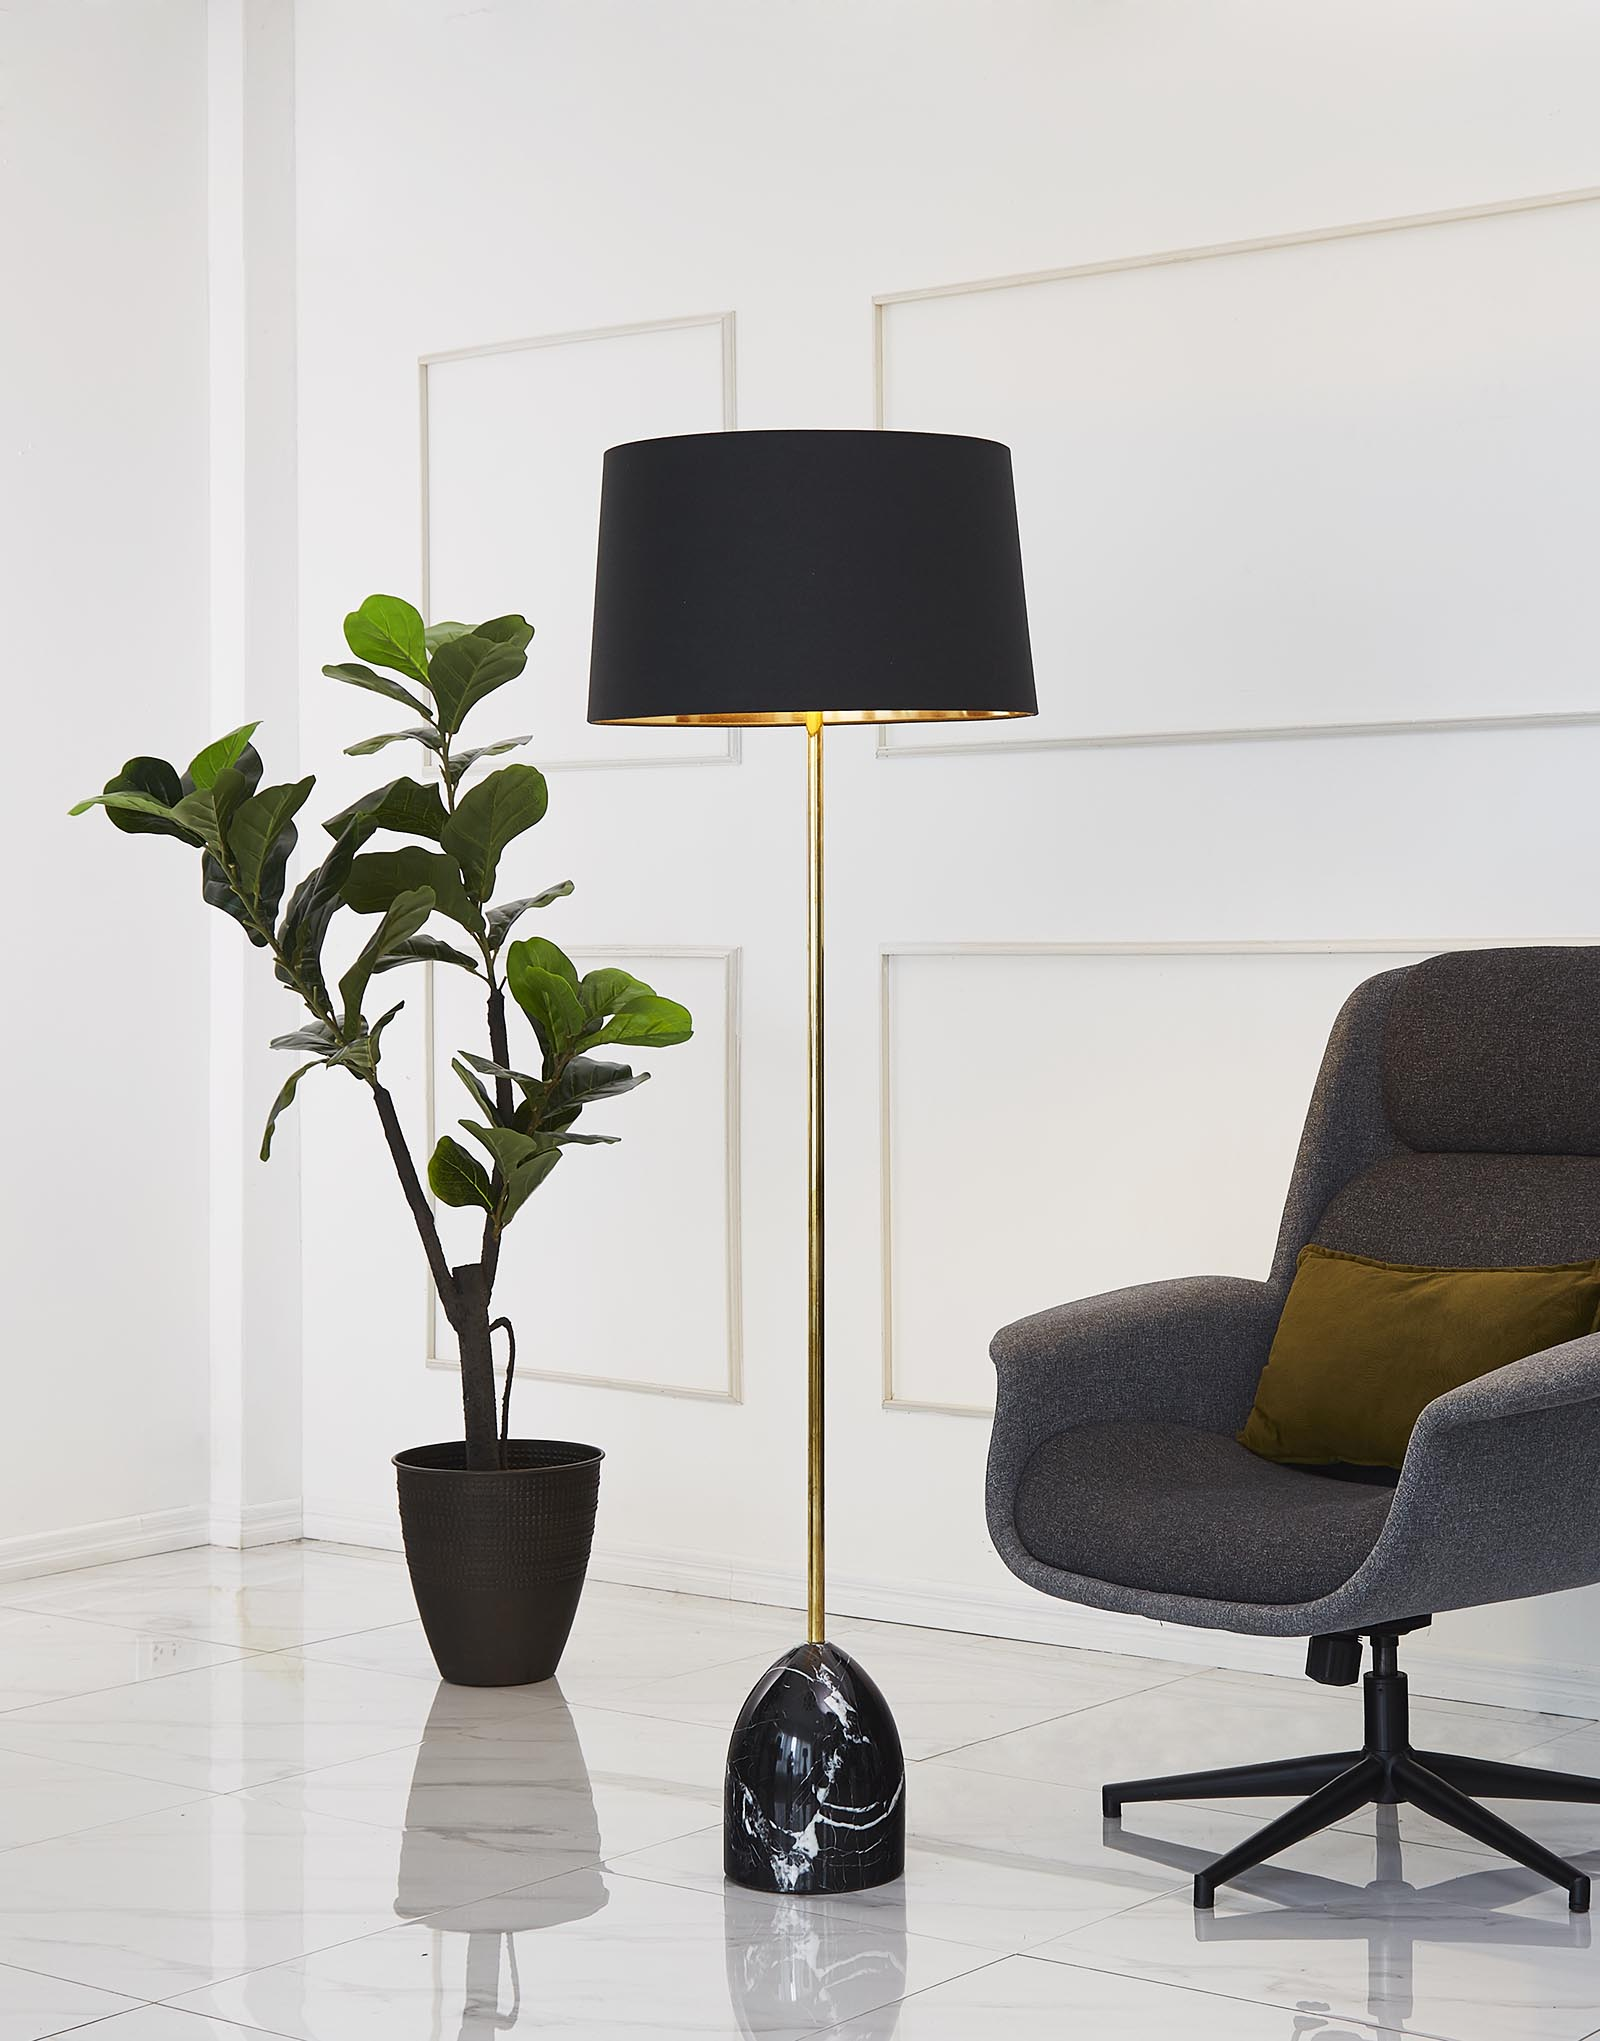 Marble floor lamp product photo #1